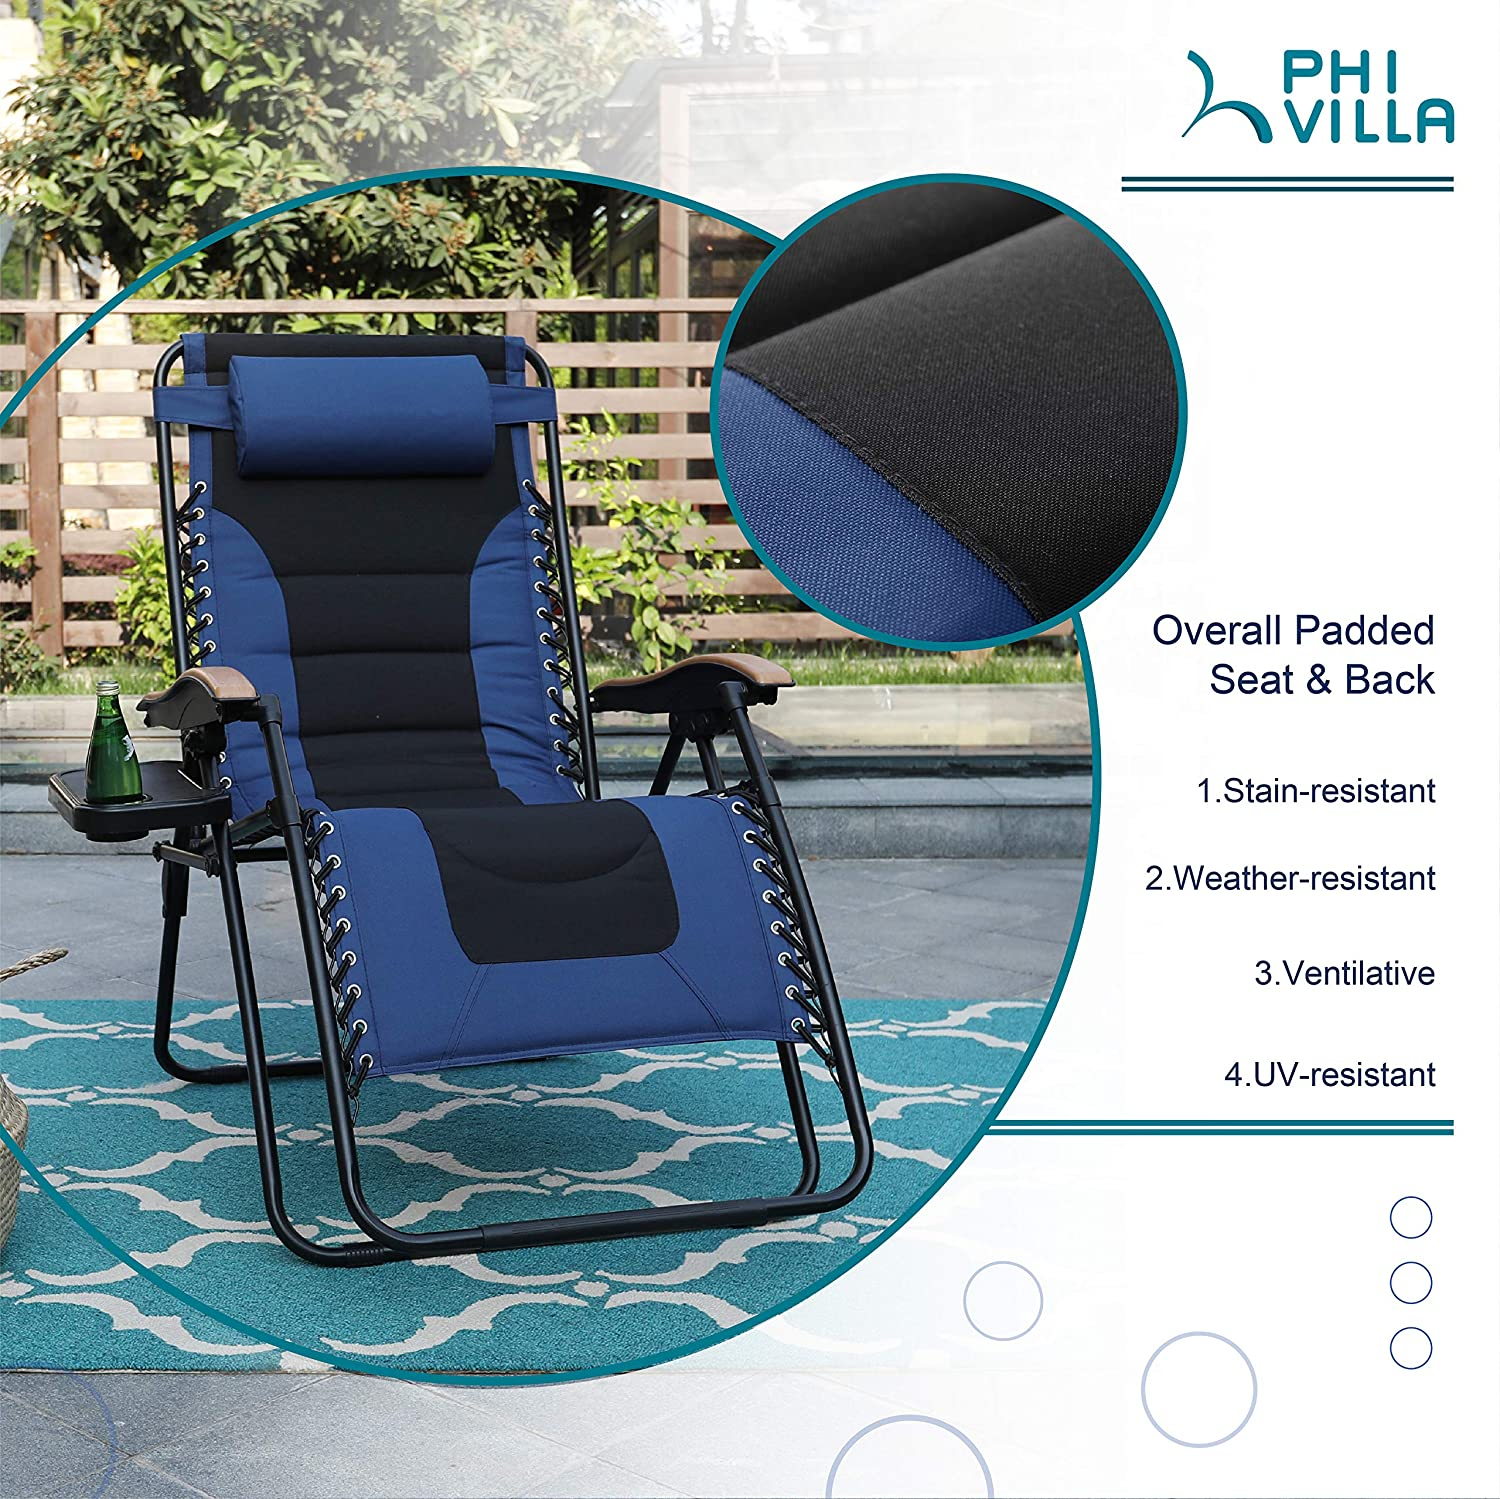 PHI VILLA XL Zero Gravity Chair Padded Recliner Oversize Lounge Chair with Free Cup Holder Blue